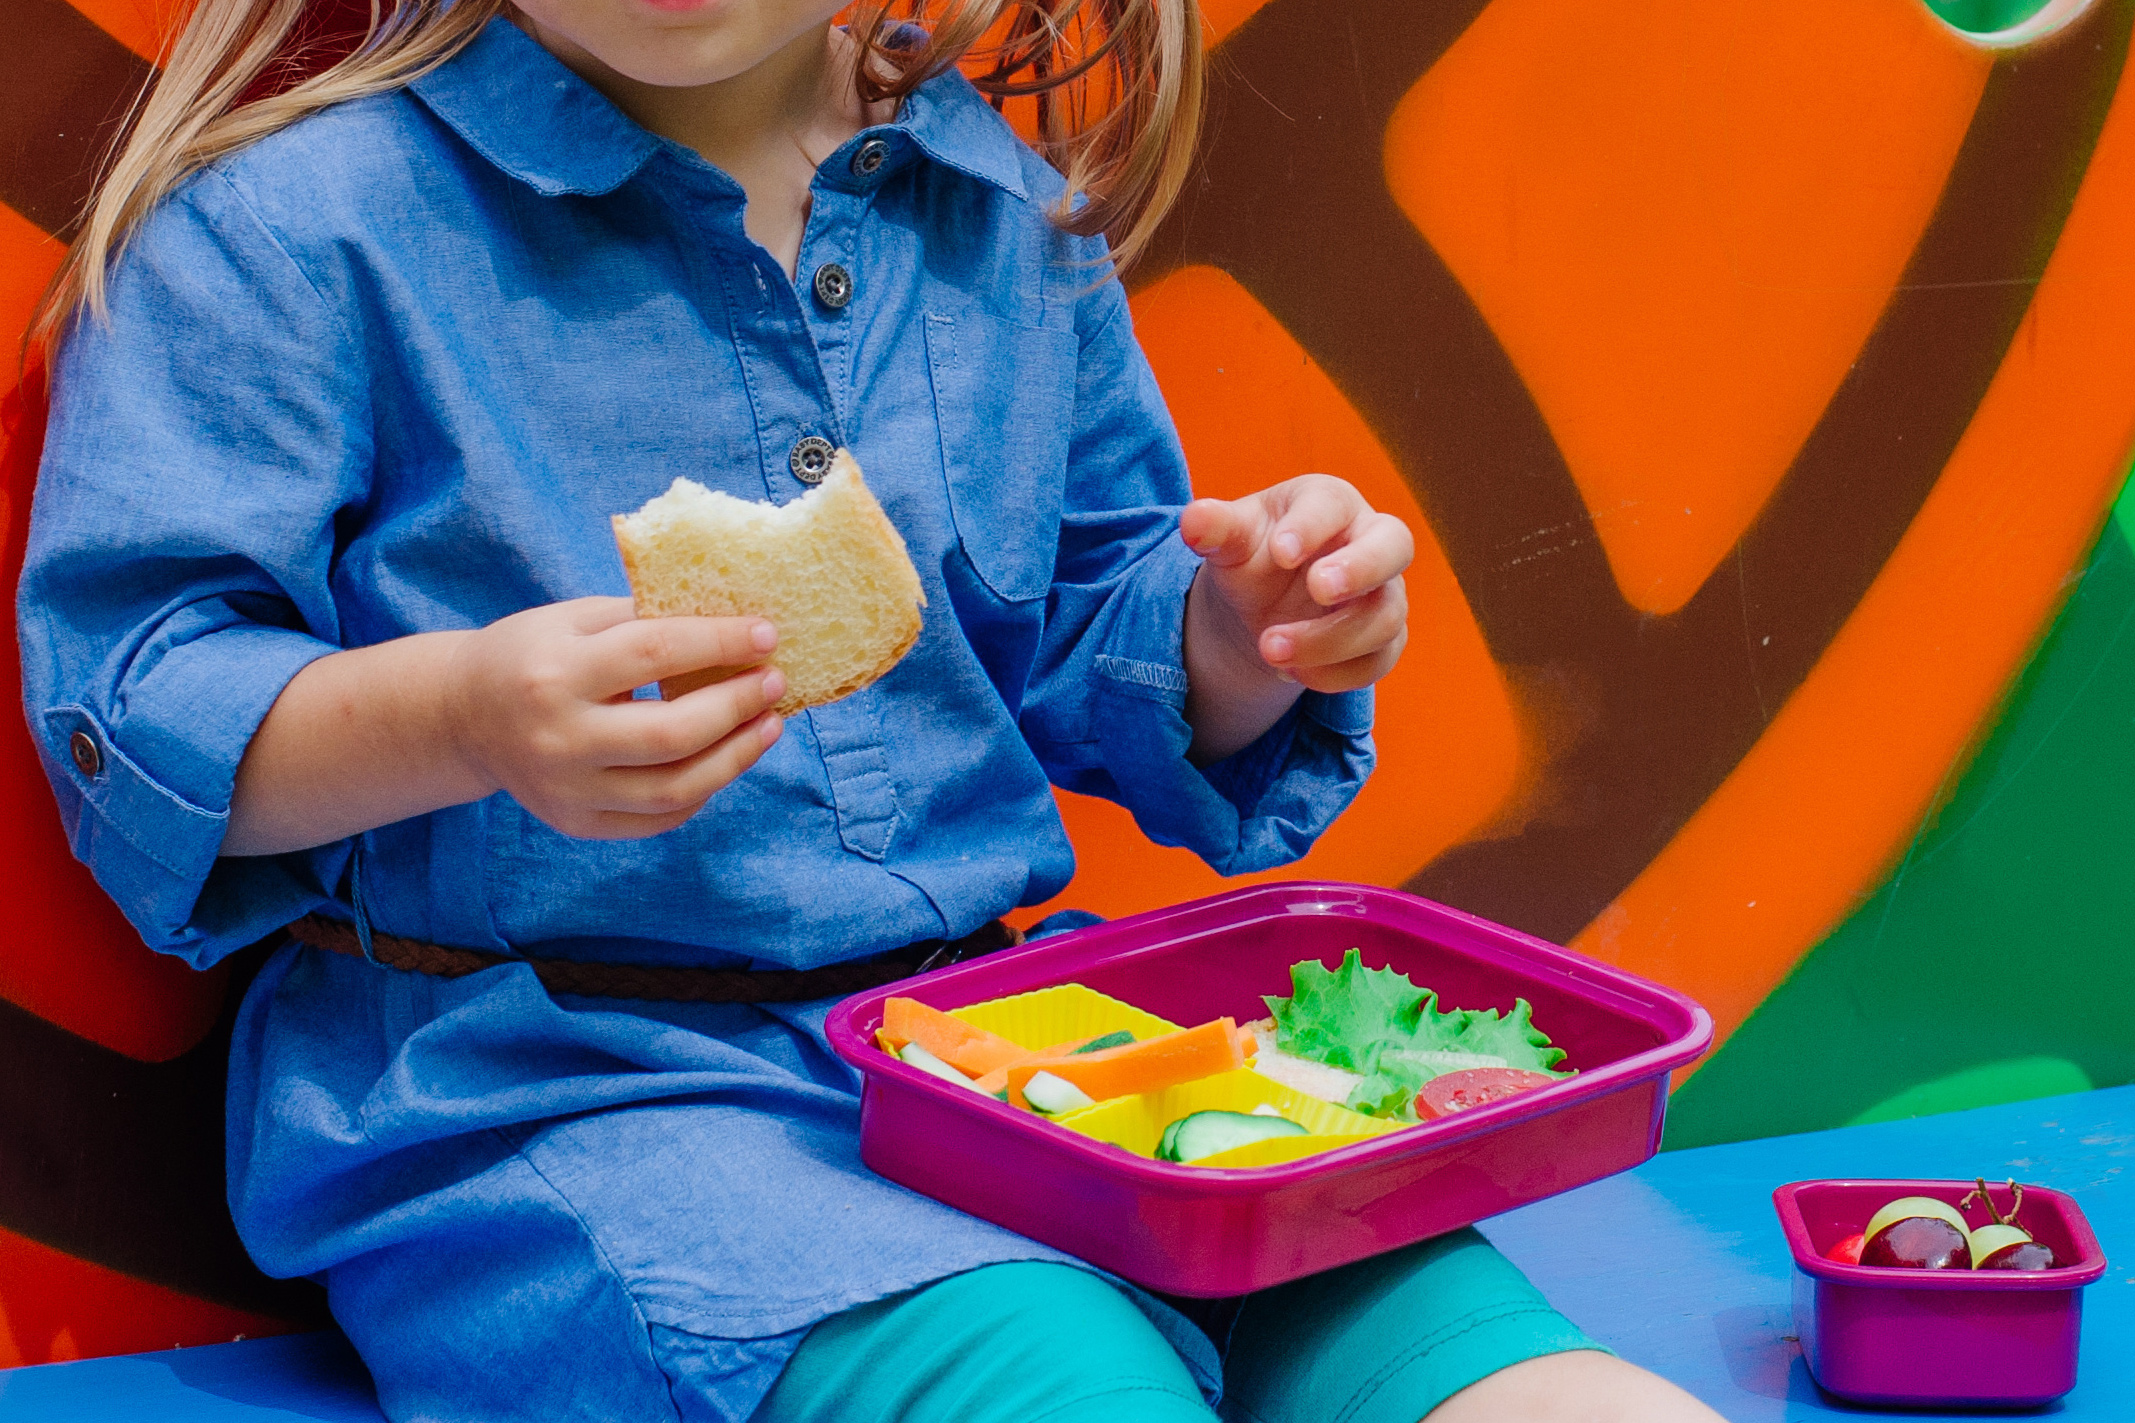 kindergartener eating from lunchbox